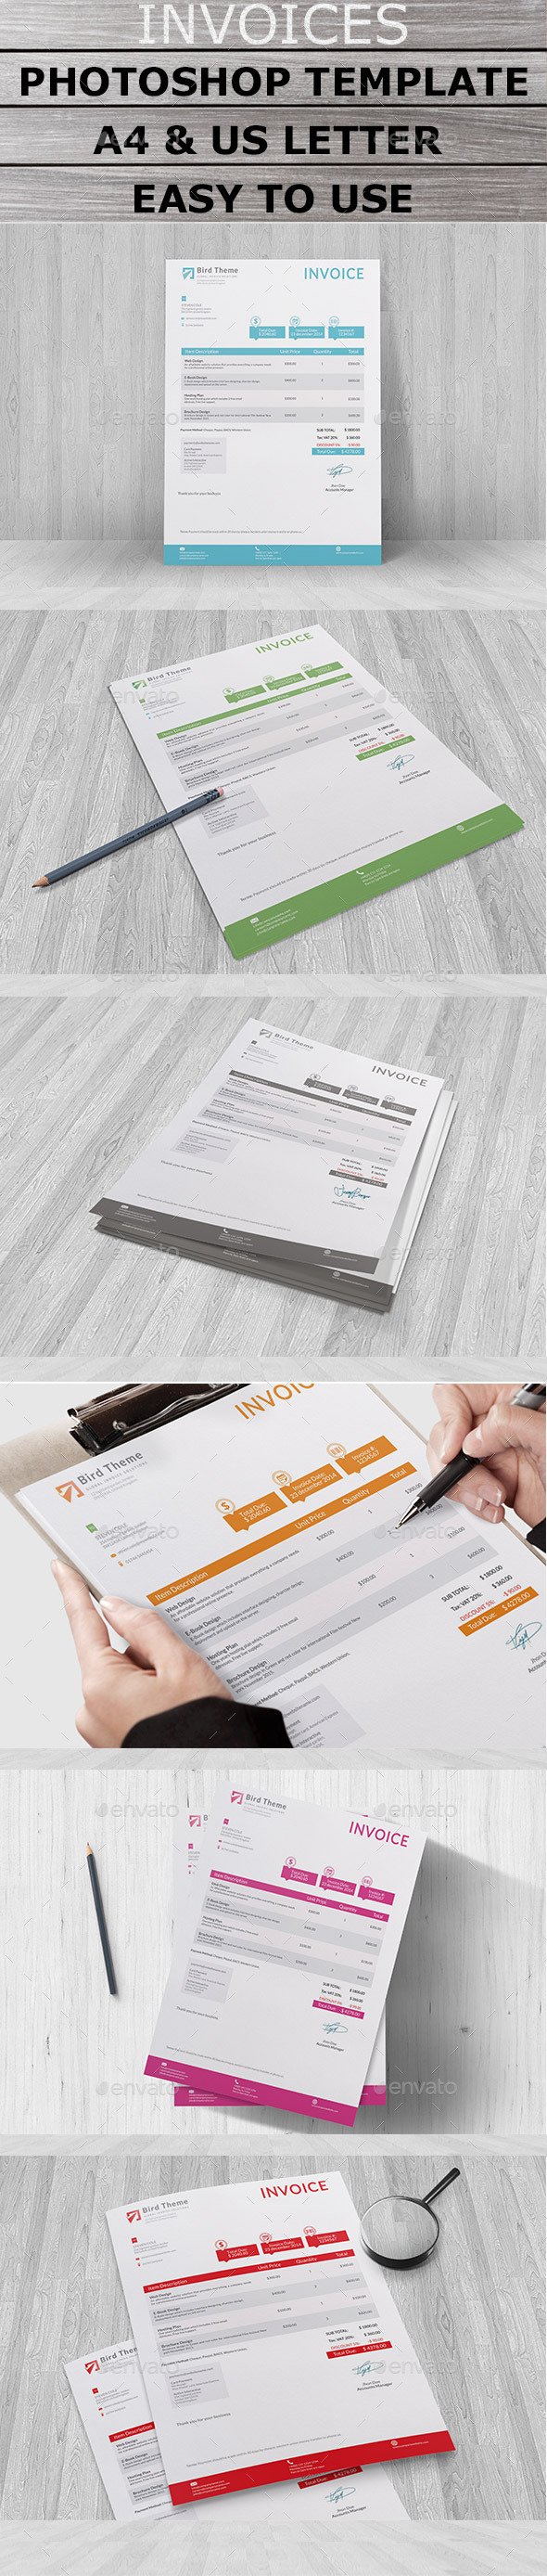 Bird Invoice - Proposals & Invoices Stationery